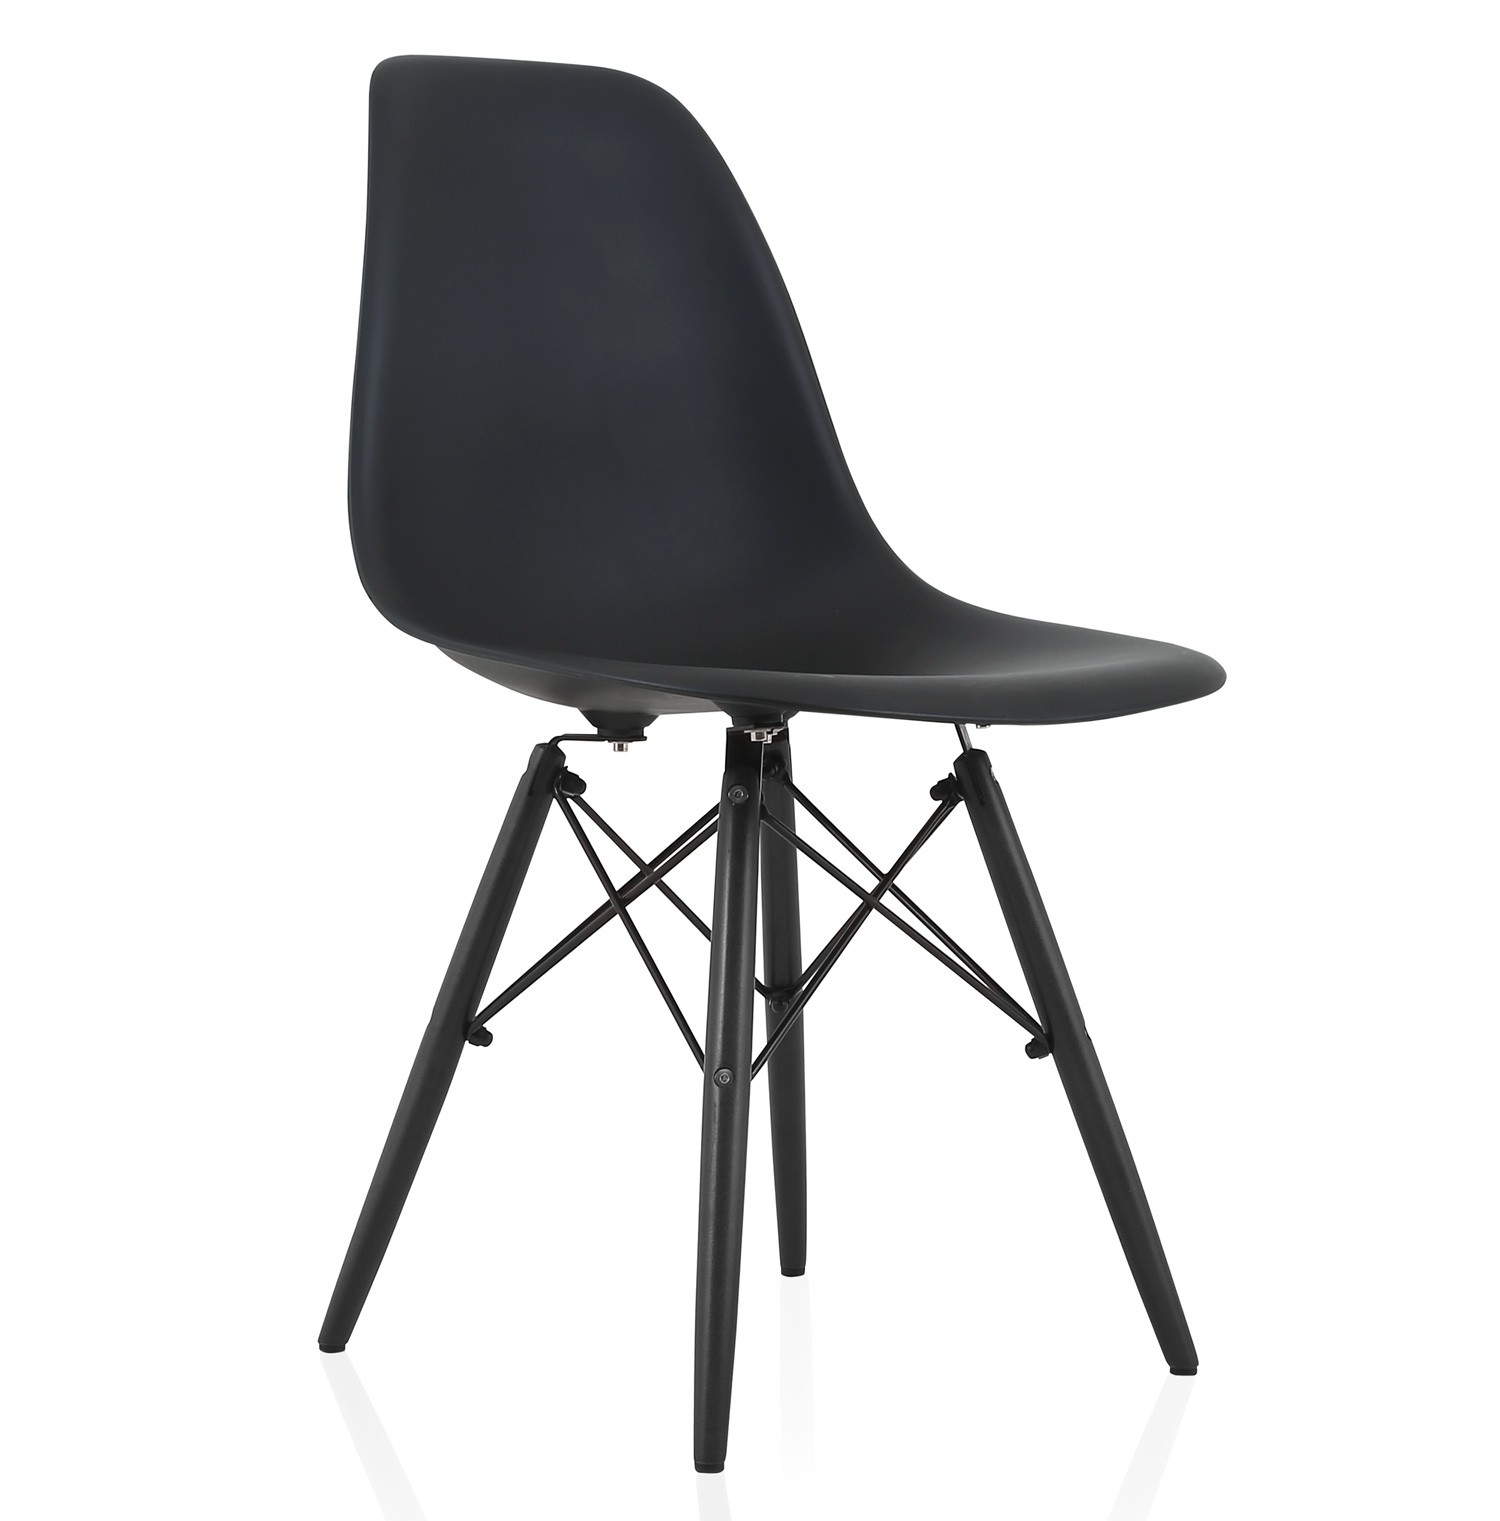 black side chair. With Your Purchase, Receive At No Cost: Black Side Chair